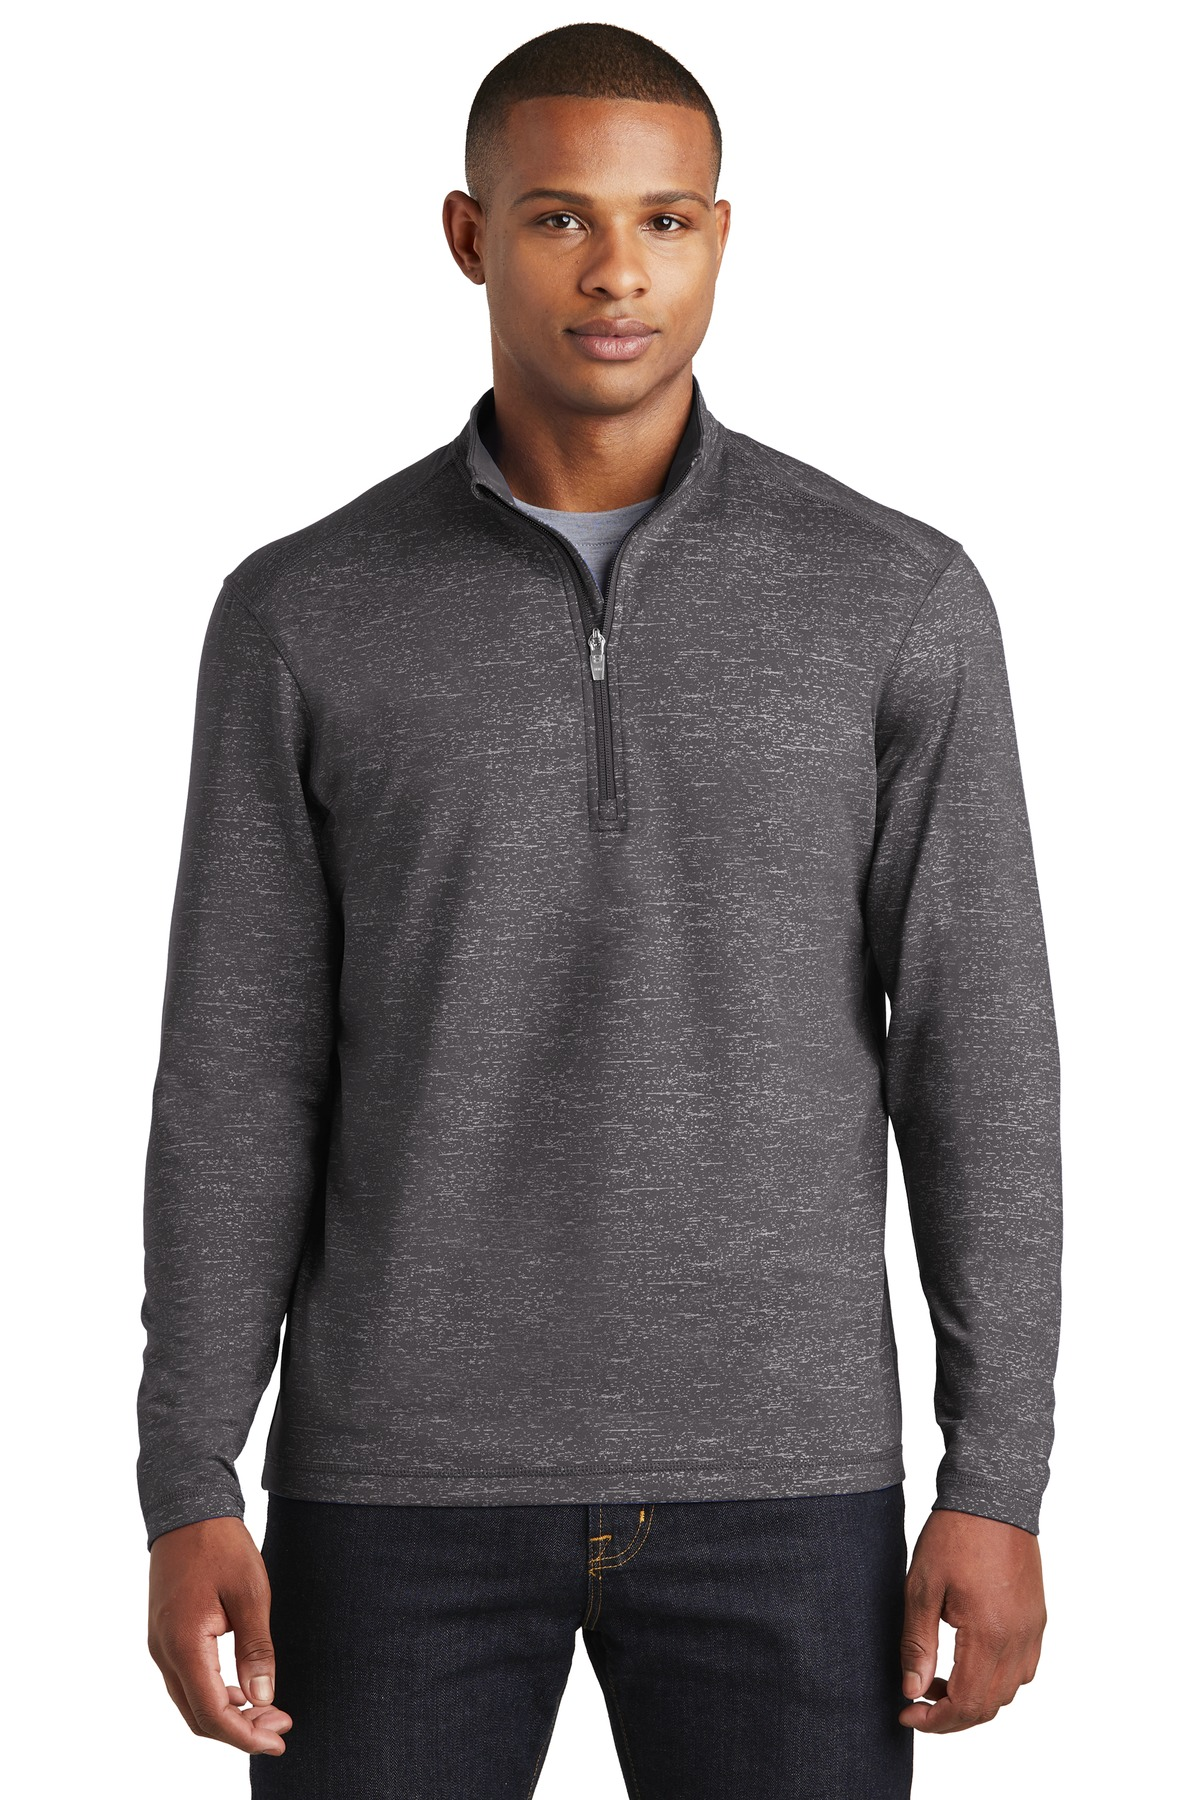 Sport-Tek  ®  Sport-Wick  ®  Stretch Reflective Heather 1/2-Zip Pullover. ST855 - Charcoal Grey